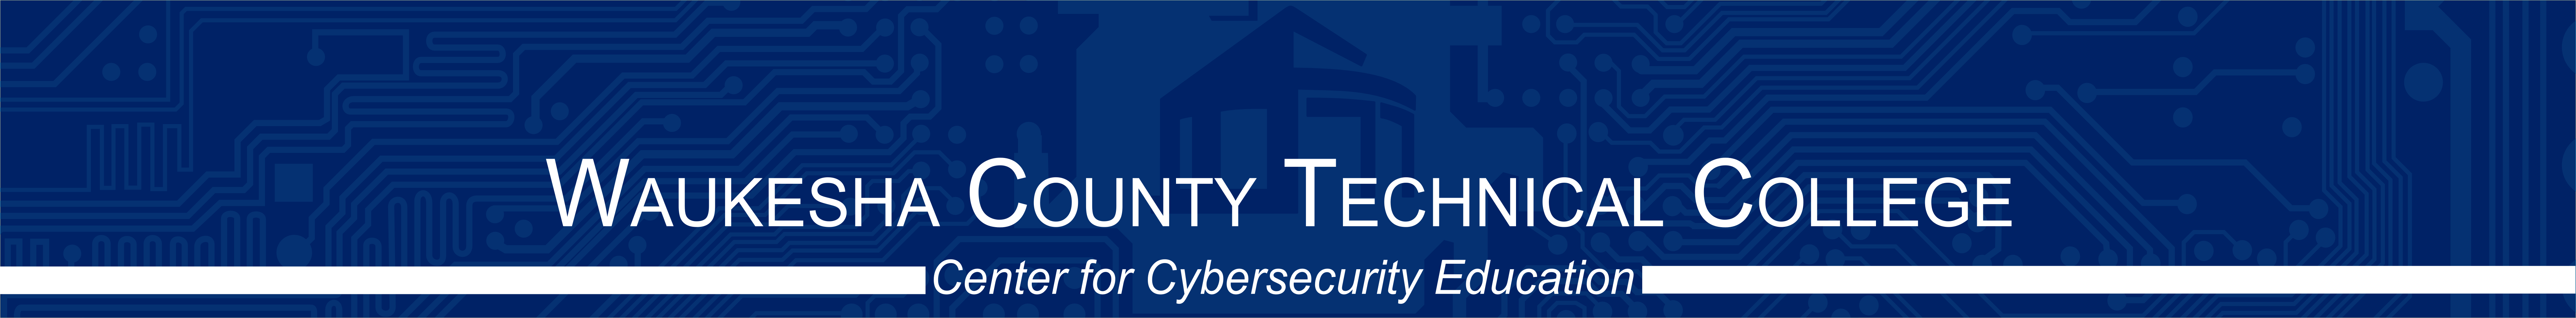 WCTC Center for Cybersecurity Education